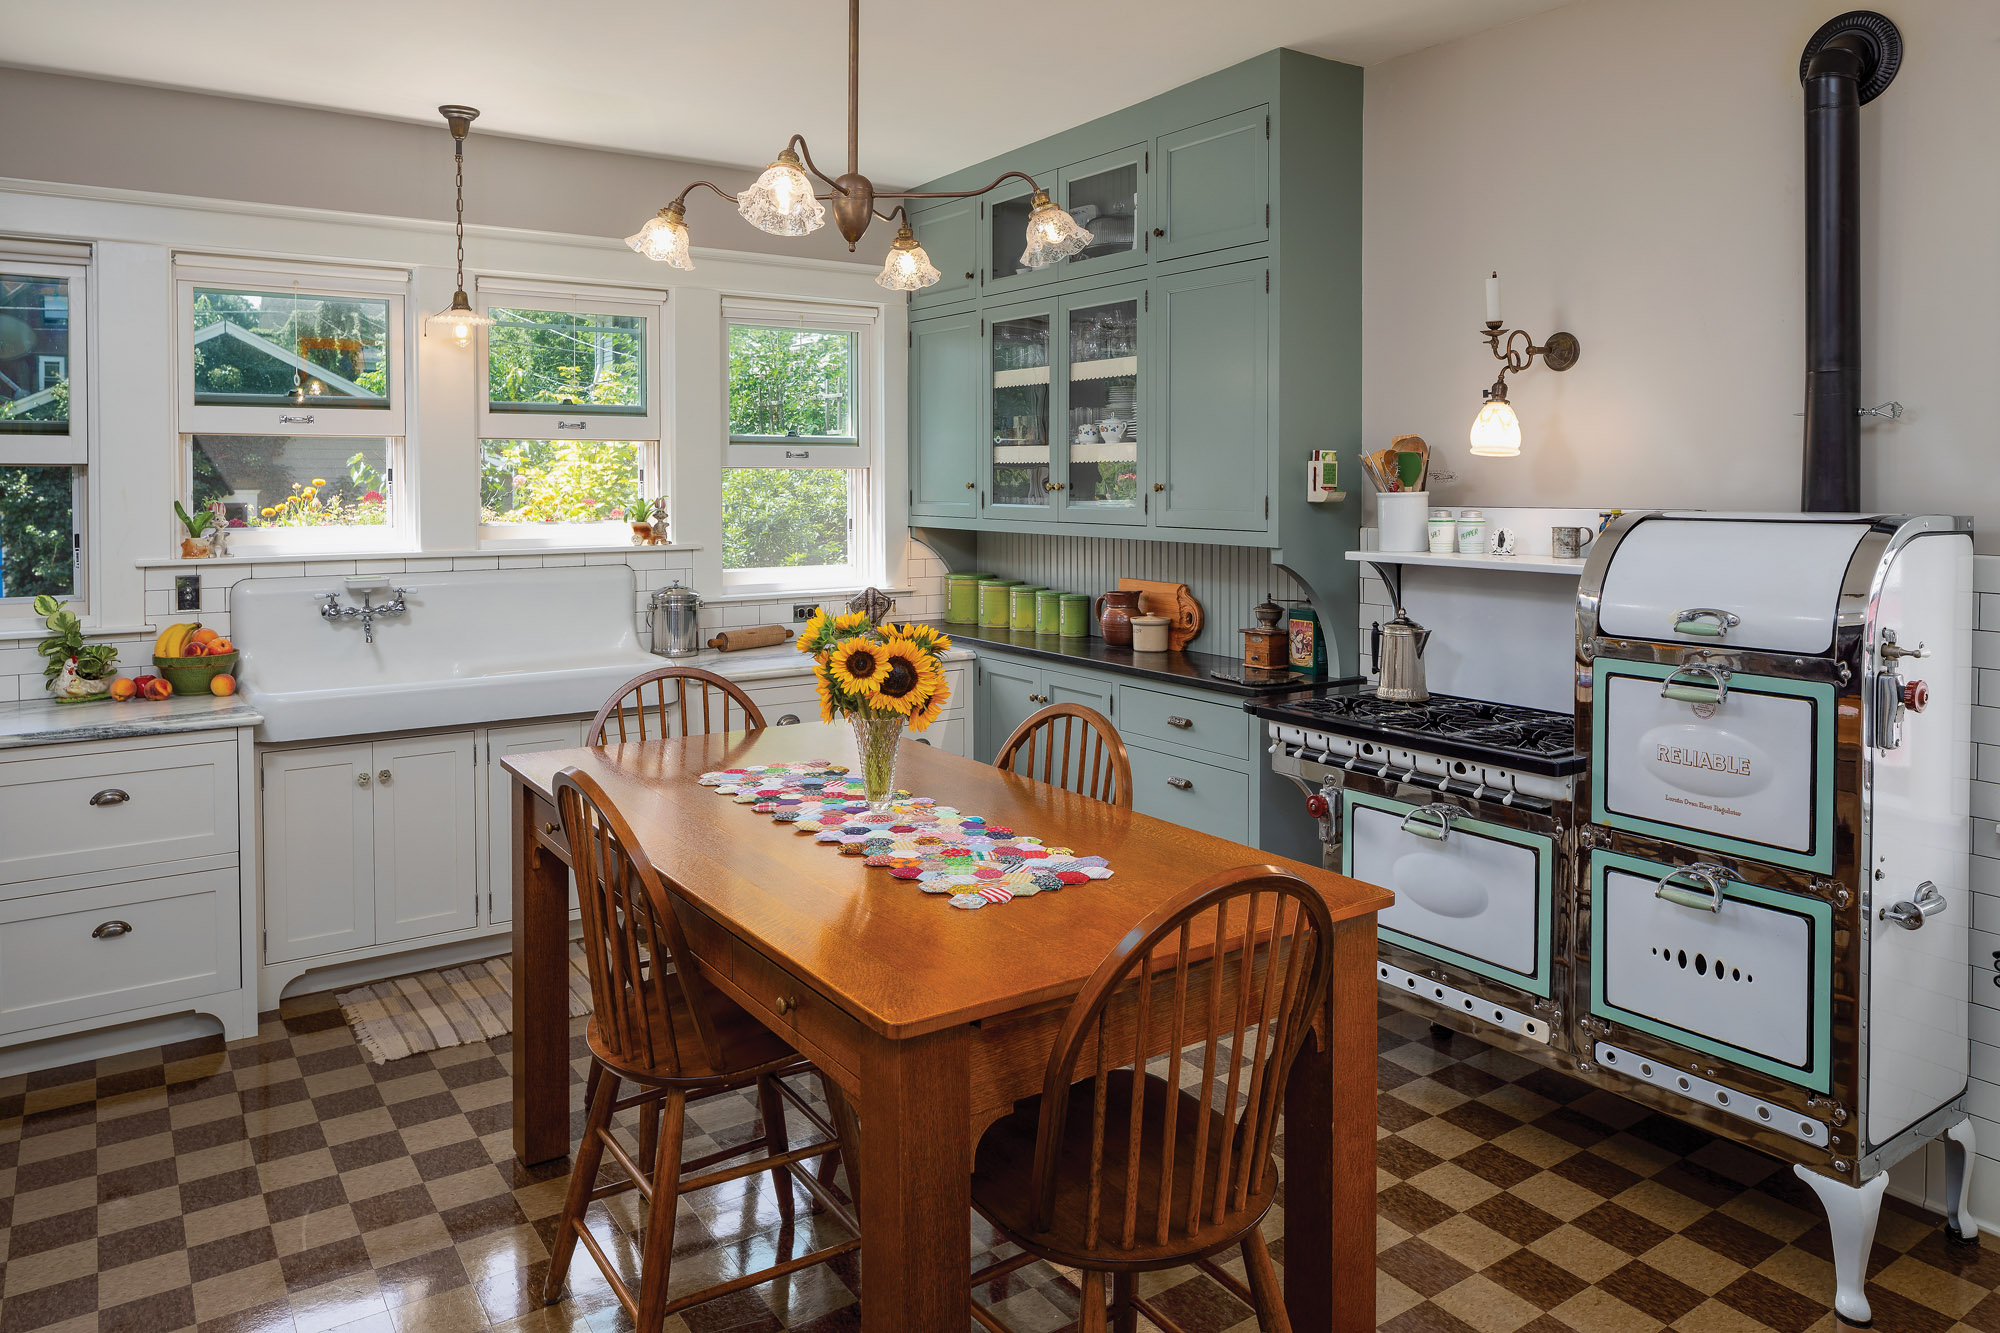 A brown checkerboard floor, antique appliances and lighting fixtures, painted cabinets, and a kitchen table create a convincing period kitchen.